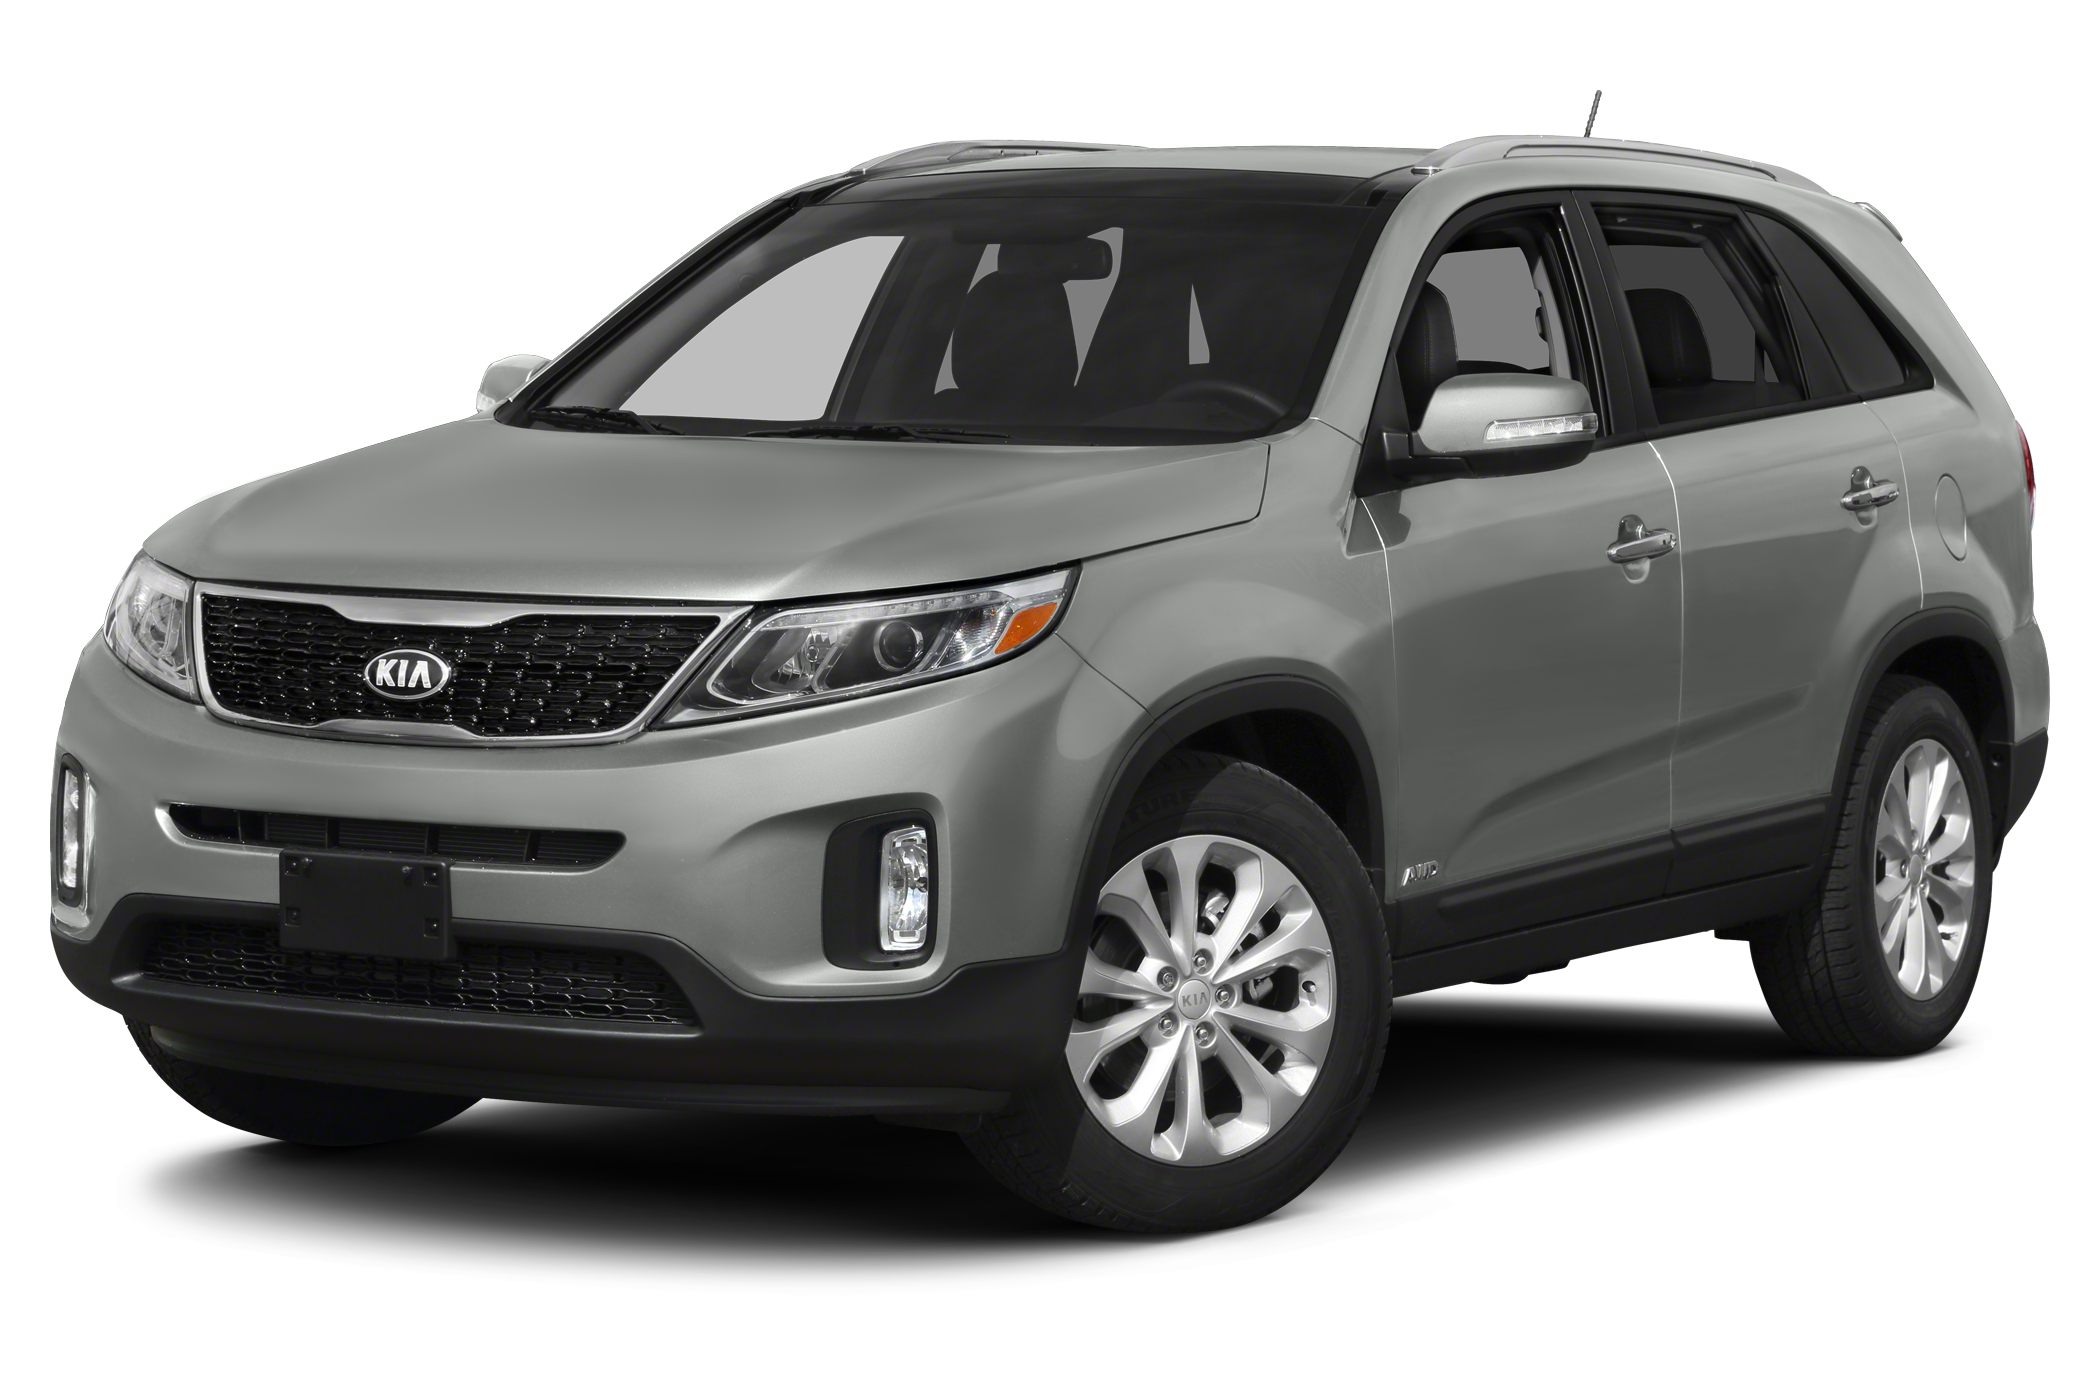 2014 Kia Sorento LX SUV for sale in Des Moines for $21,699 with 31,309 miles